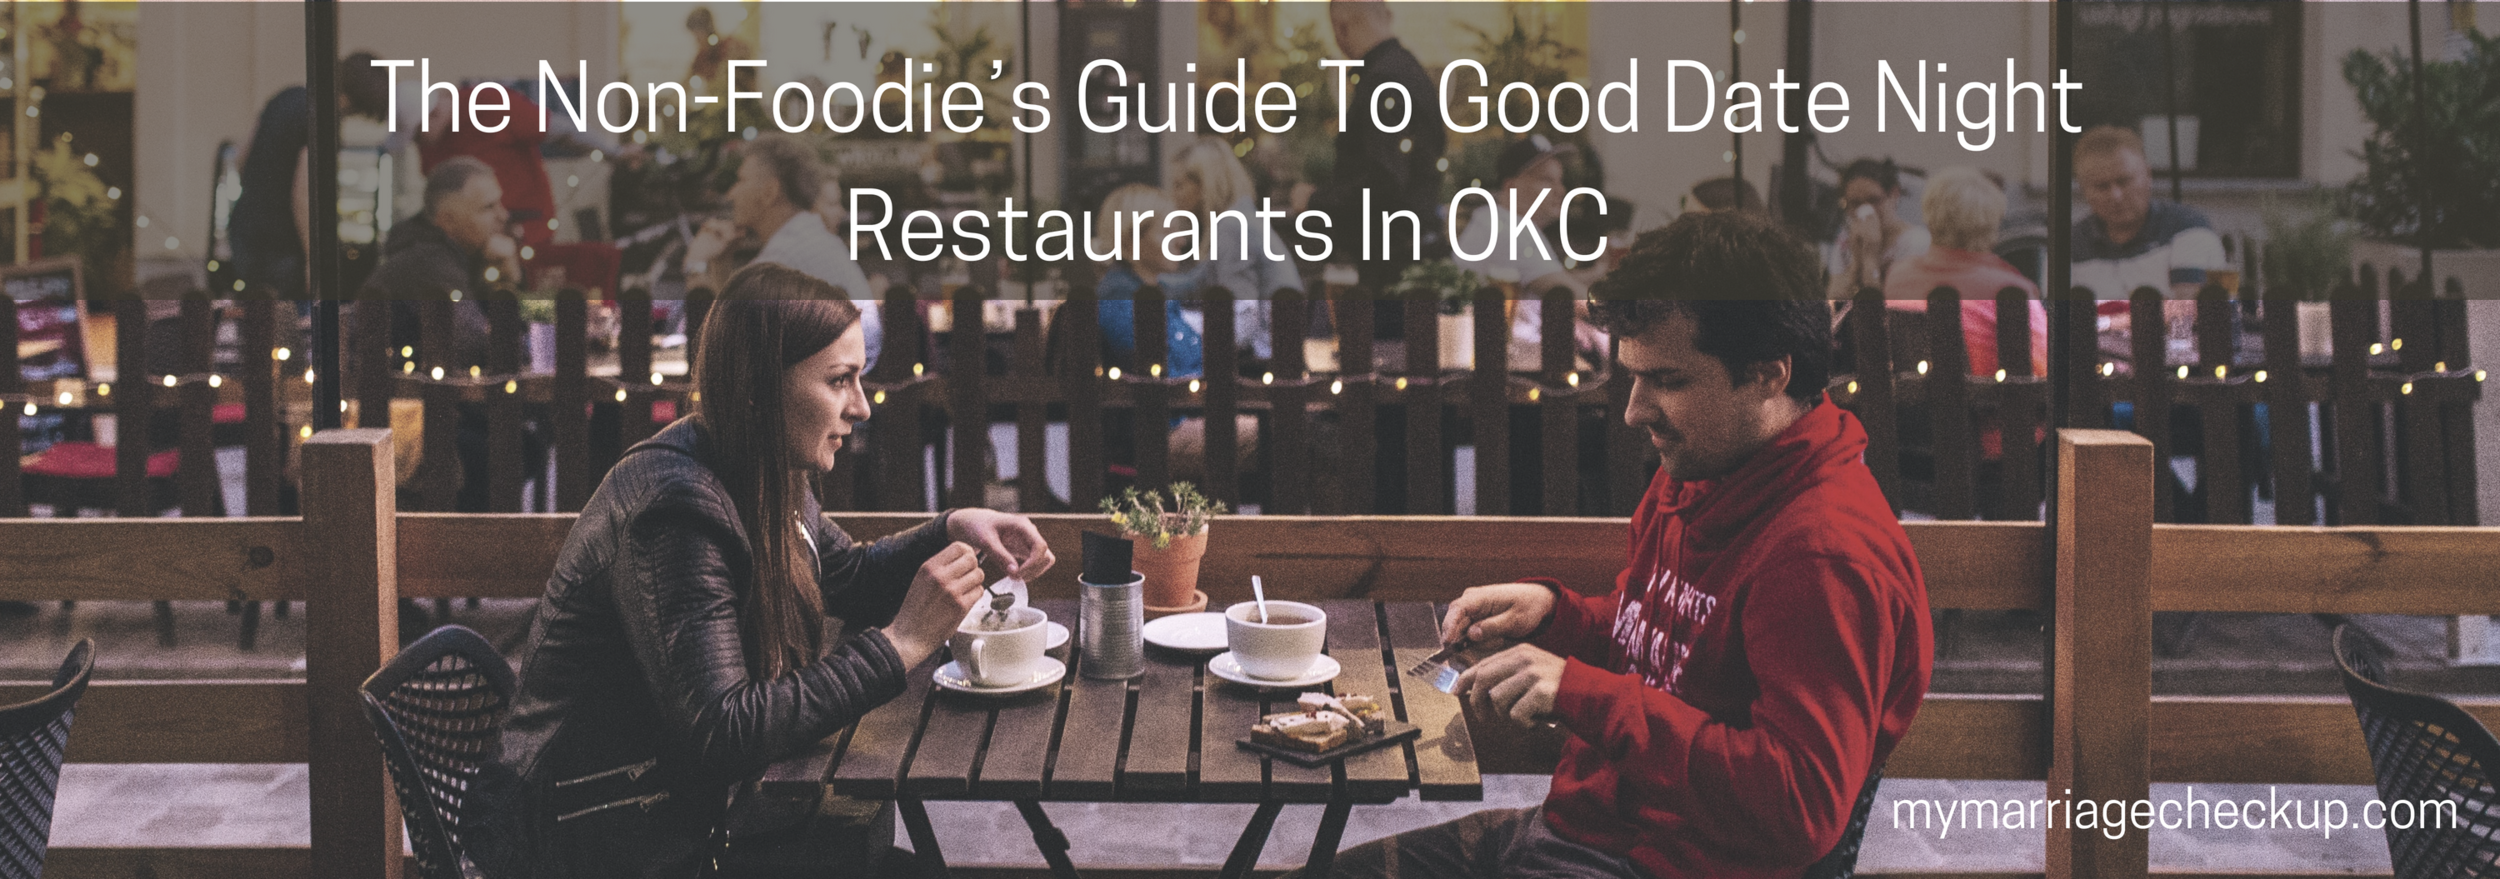 The Non-Foodie's Guide To Good Date Night Restaurants In OKC.png